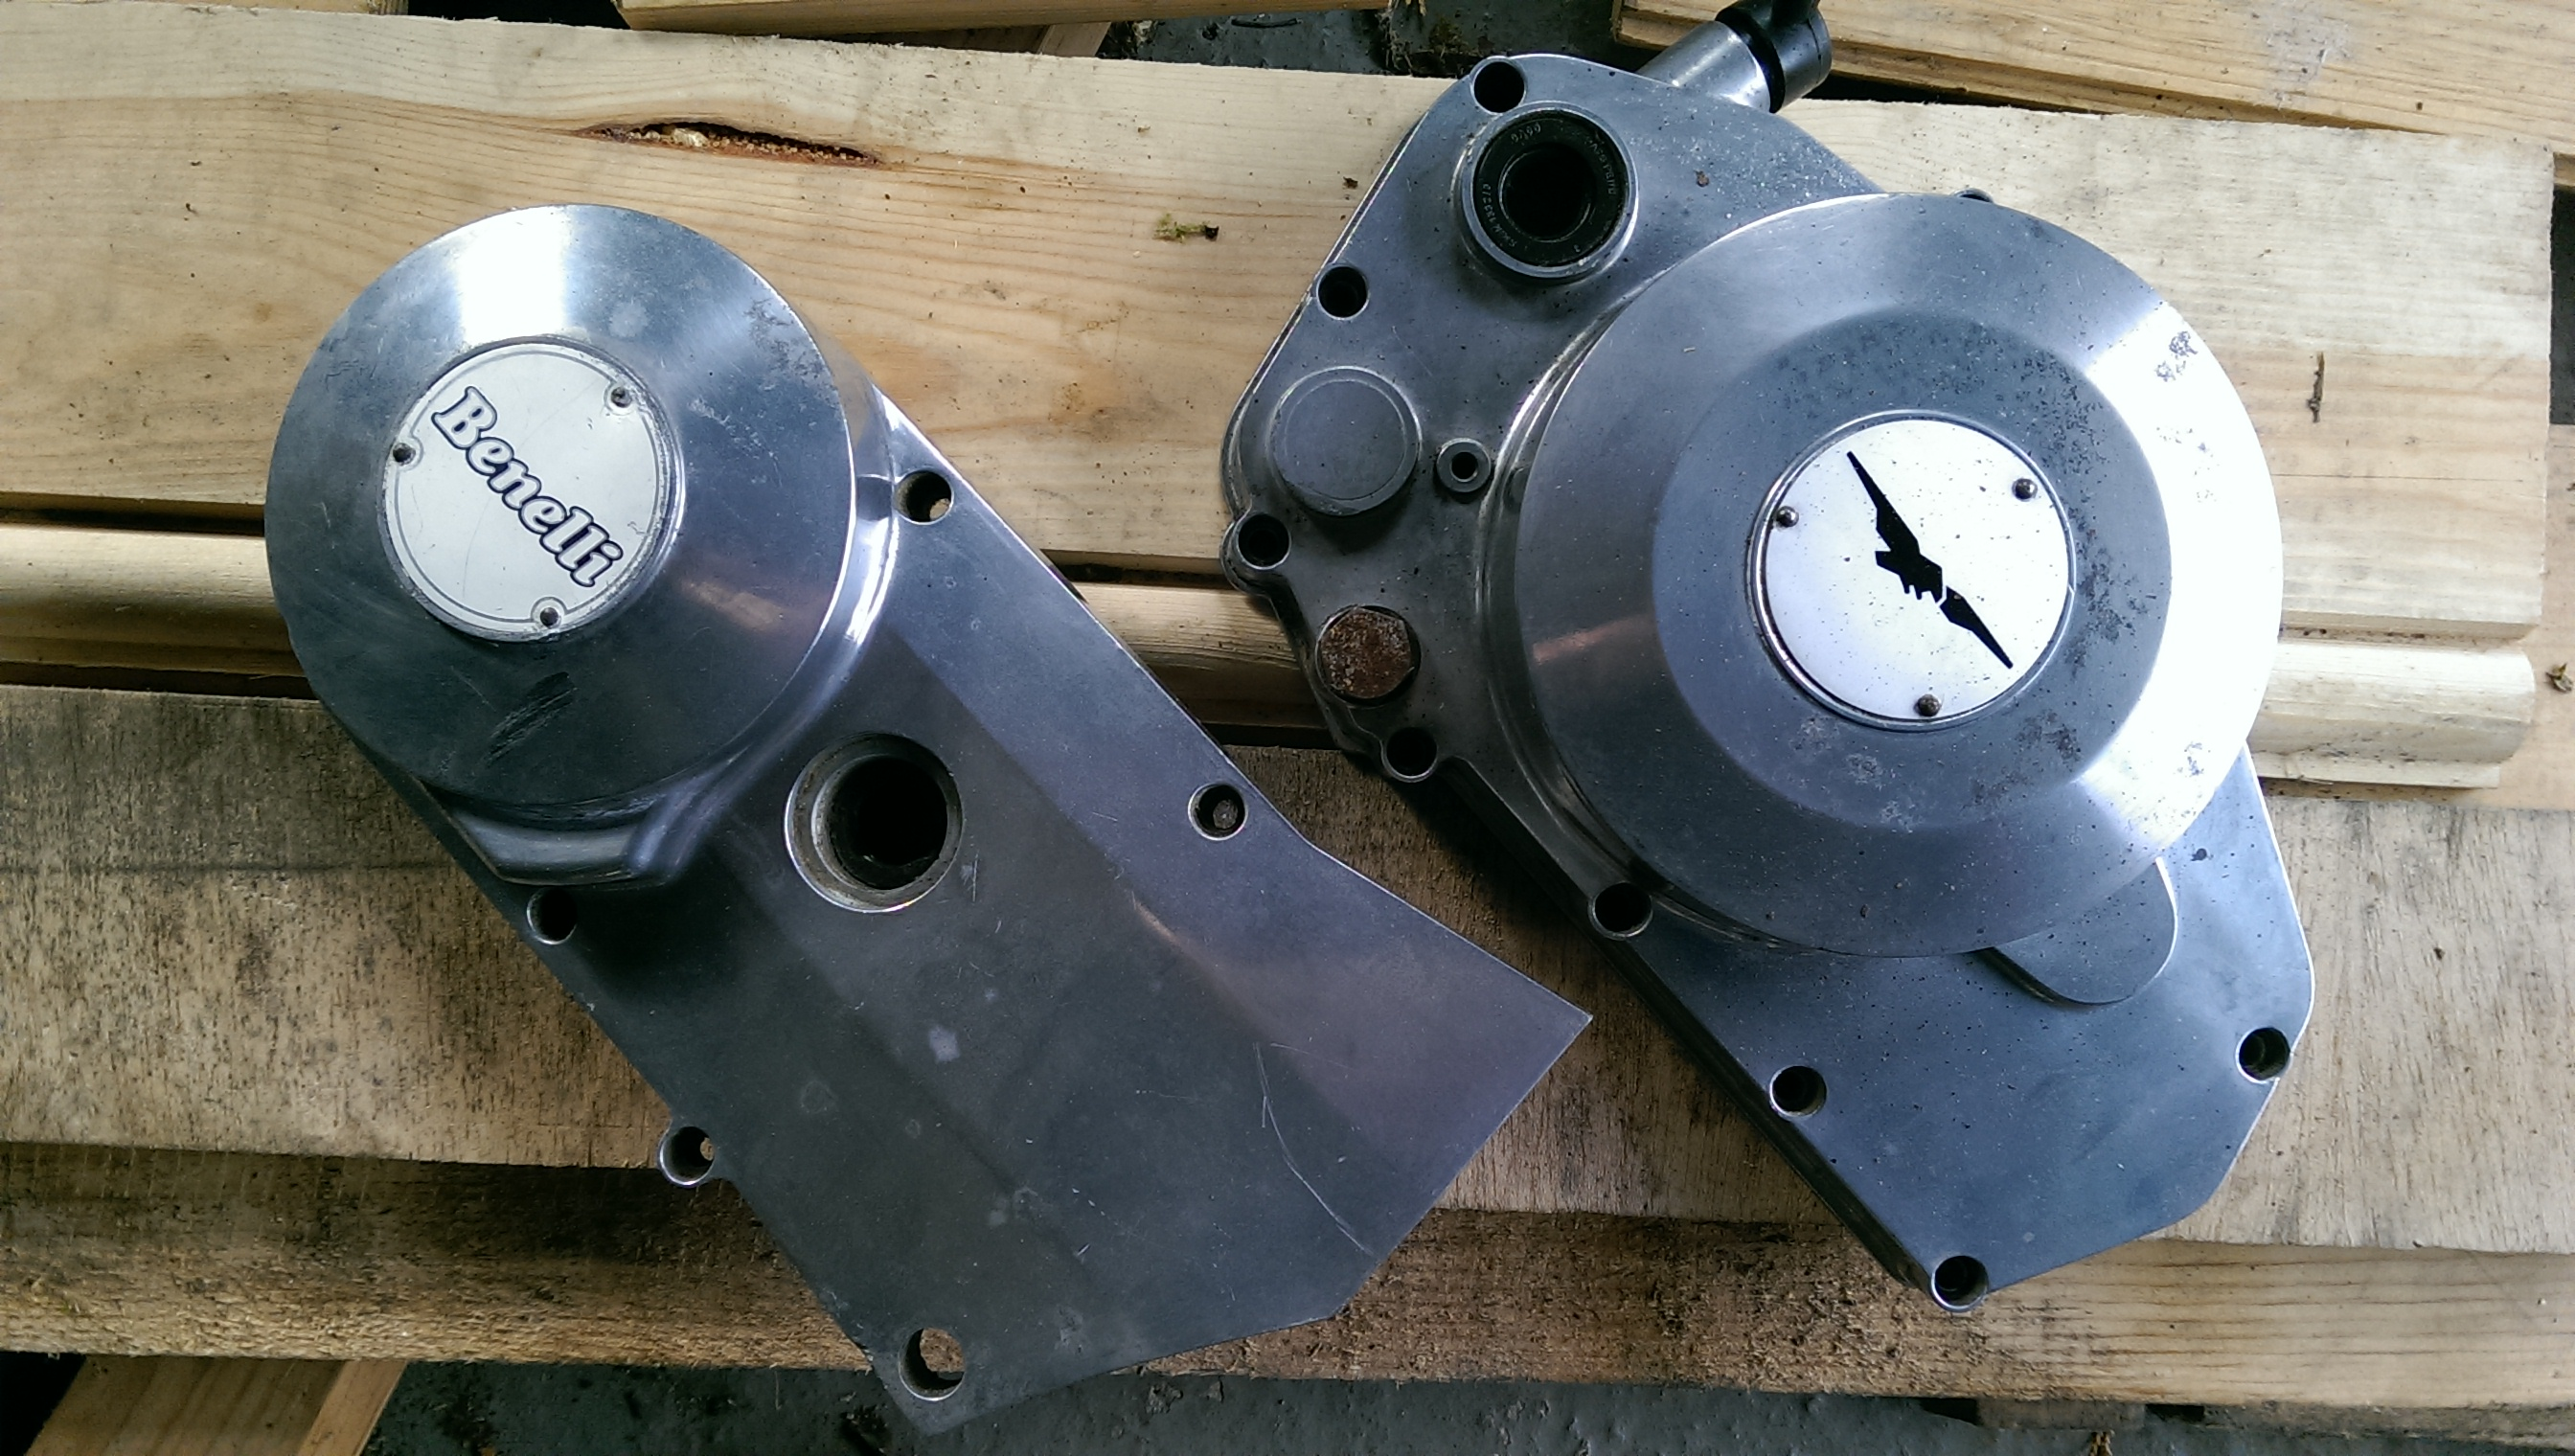 250 2C Parts for sale-imag0101.jpg